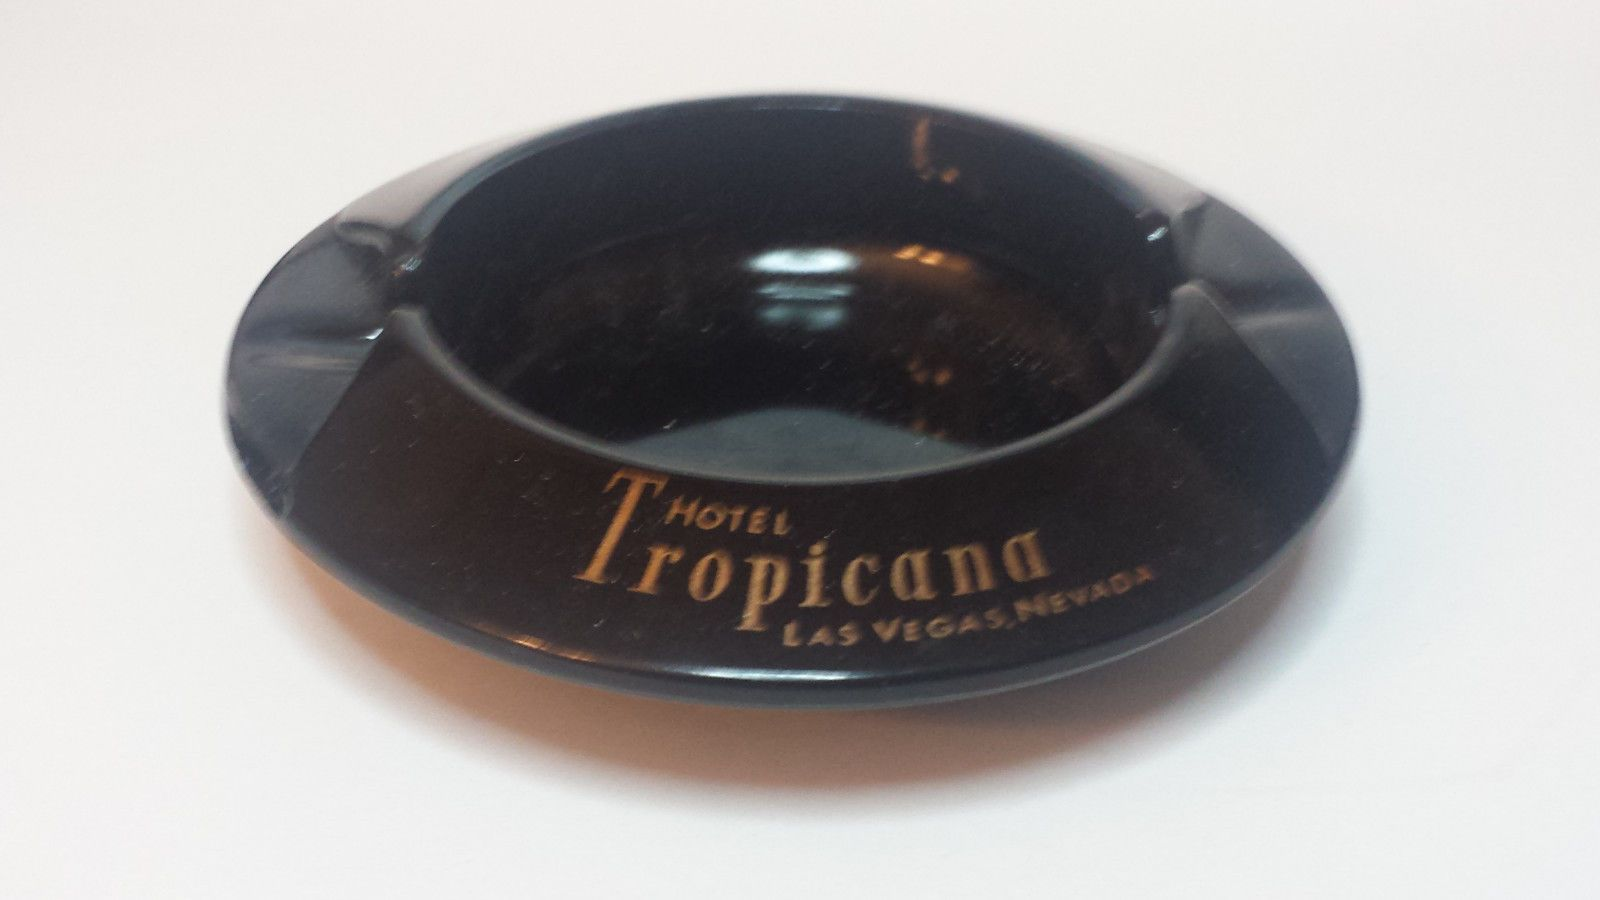 "#ashtray Hotel Tropicana Las Vegas Nevada black Ceramic 4.5"" in diamter RARE LasVegas visit our ebay store at  http://stores.ebay.com/esquirestore"